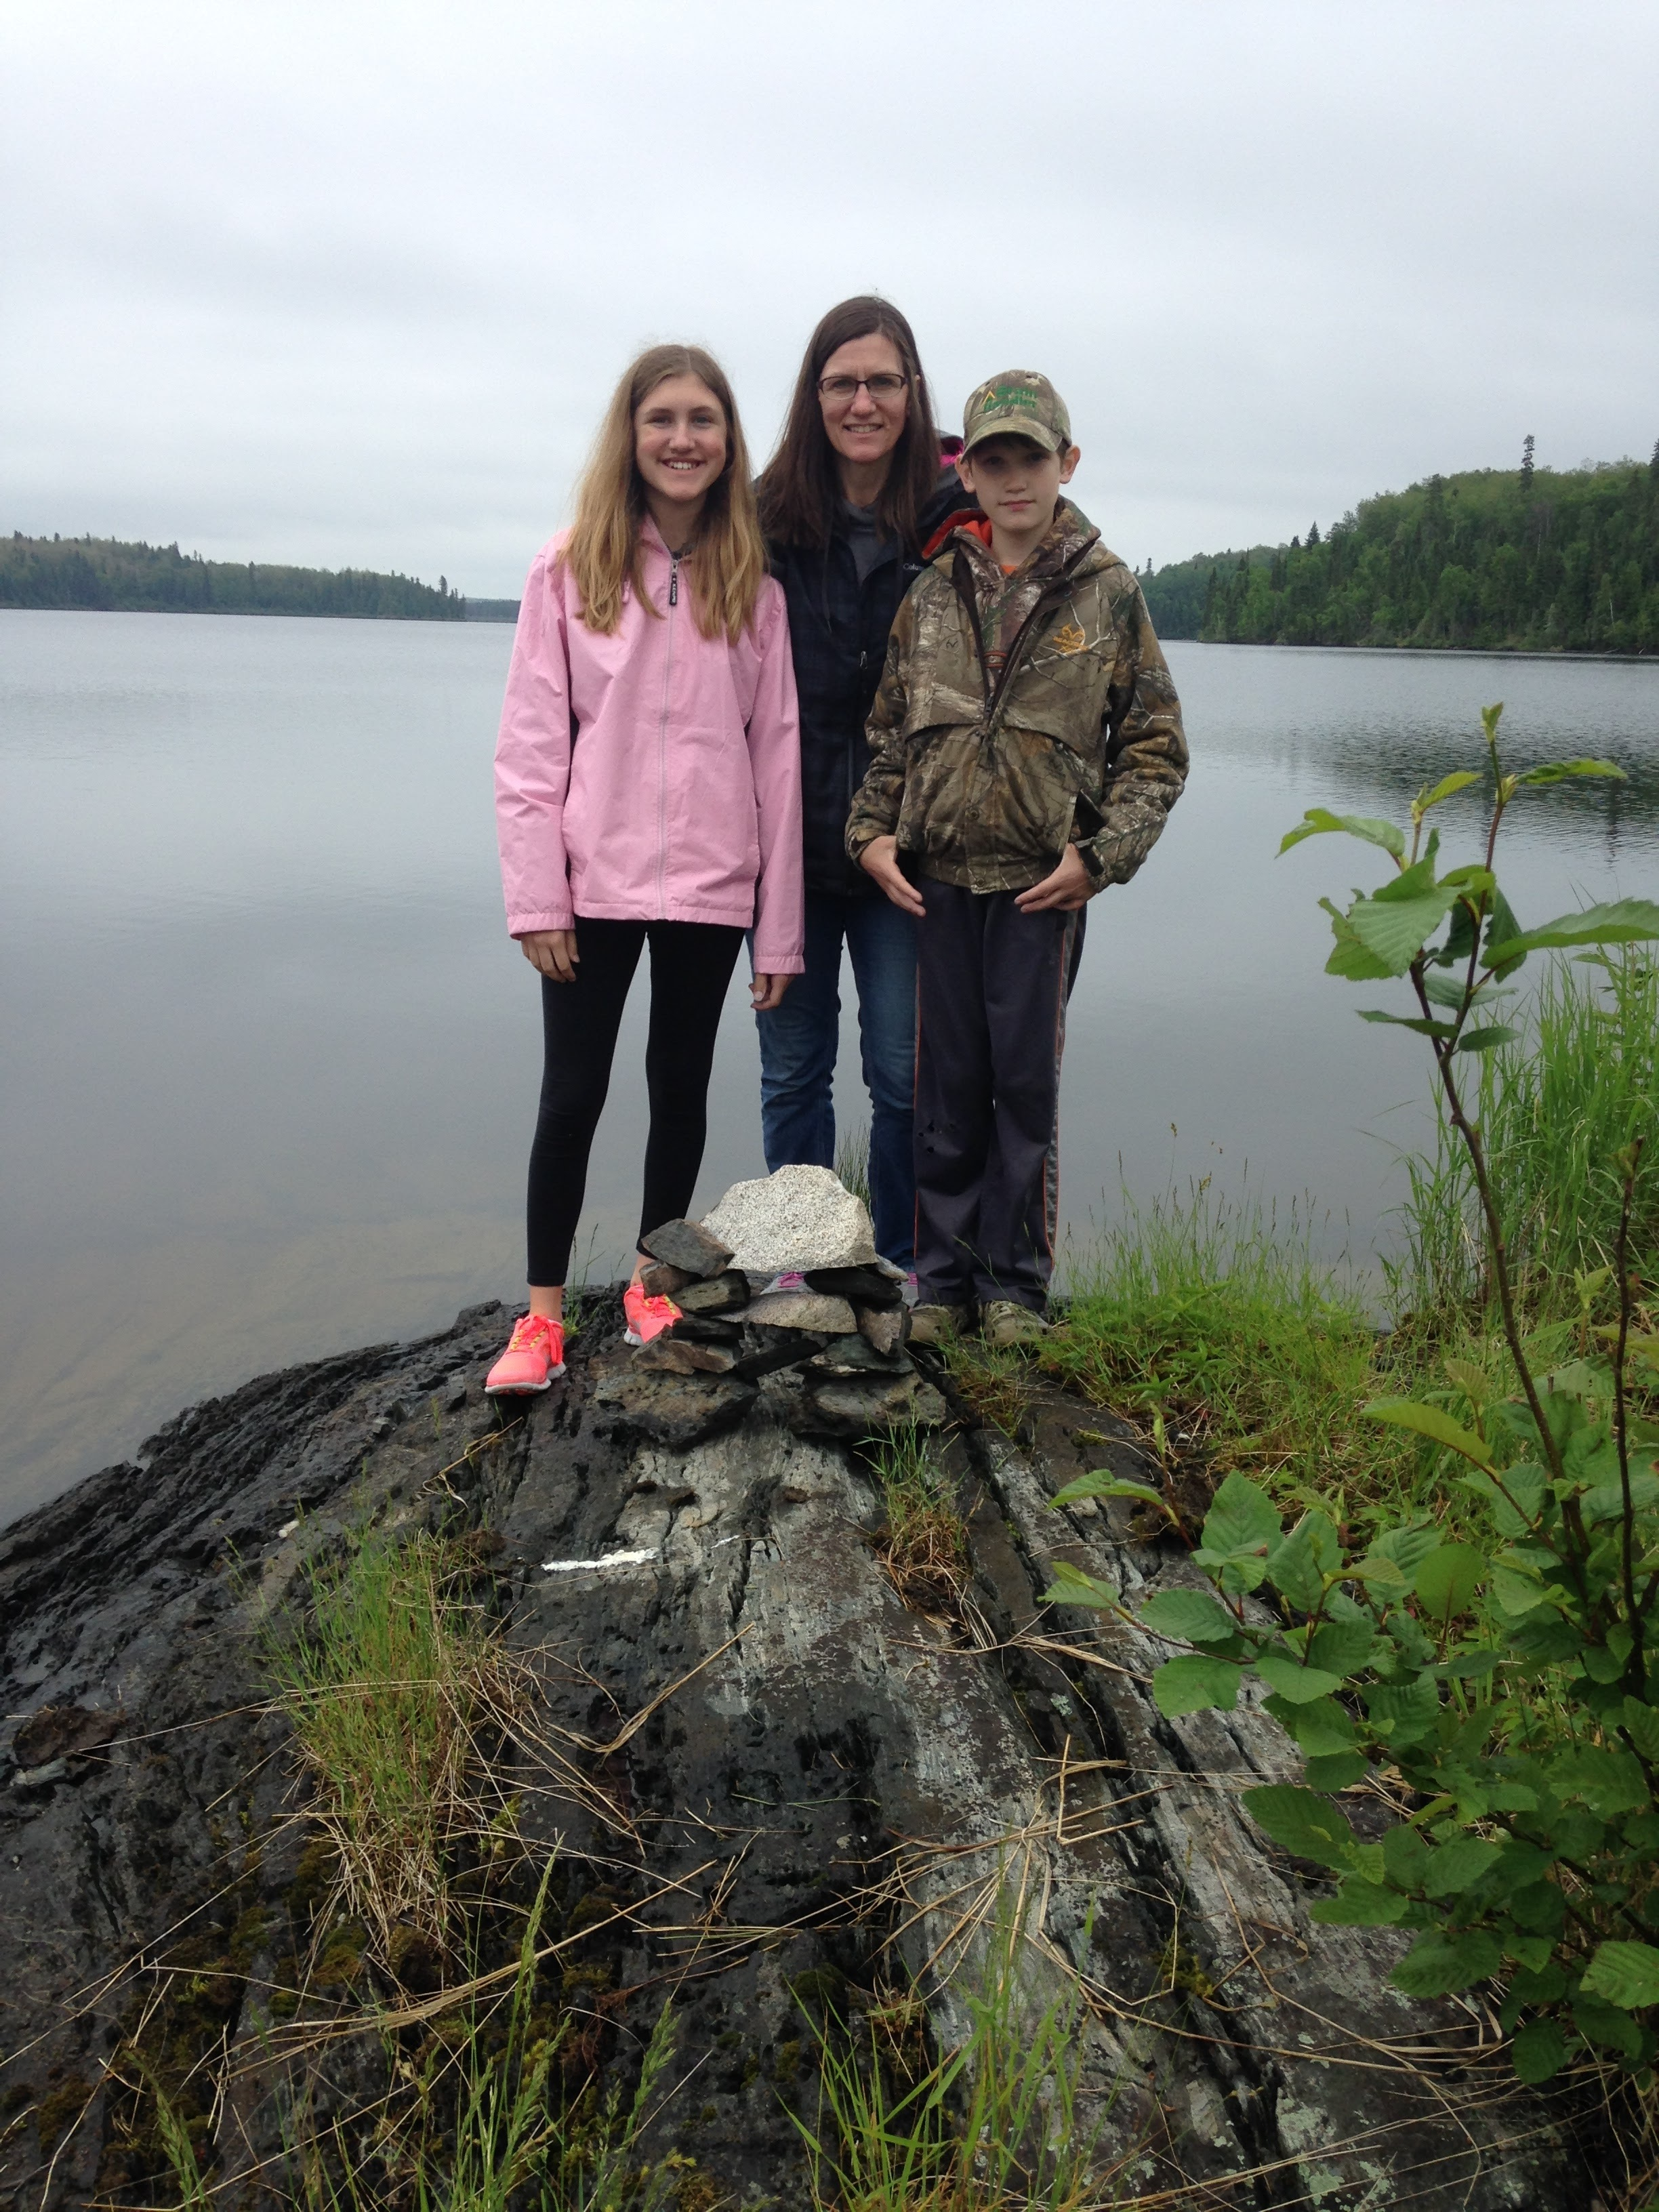 Siblings-and-Mom-with-Rock-Pile-Canada.jpg